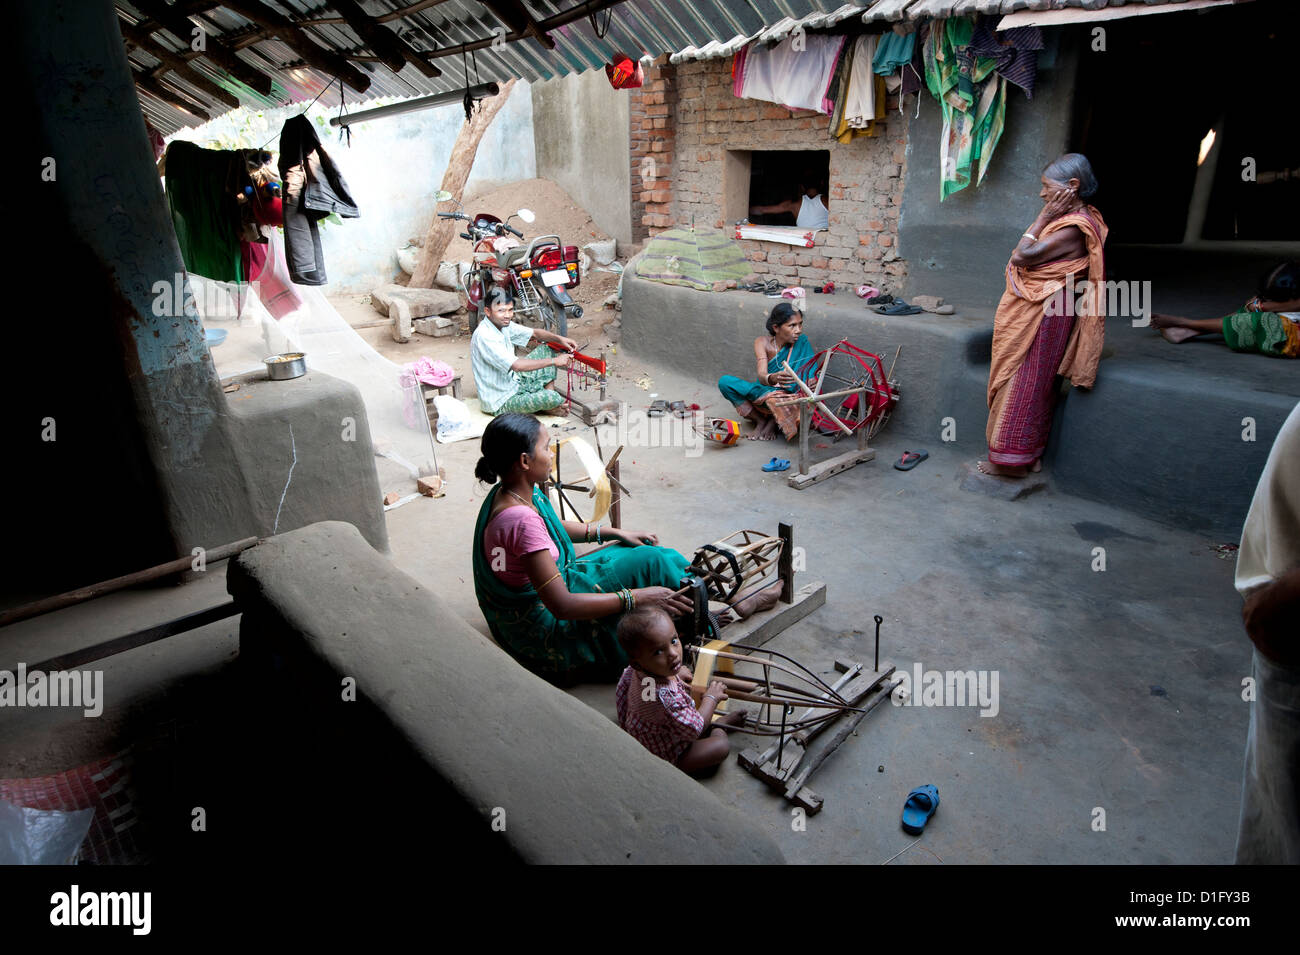 Women in communal back yard of weaving village, spinning silk thread, Vaidyanathpur weaving village, Orissa, India - Stock Image